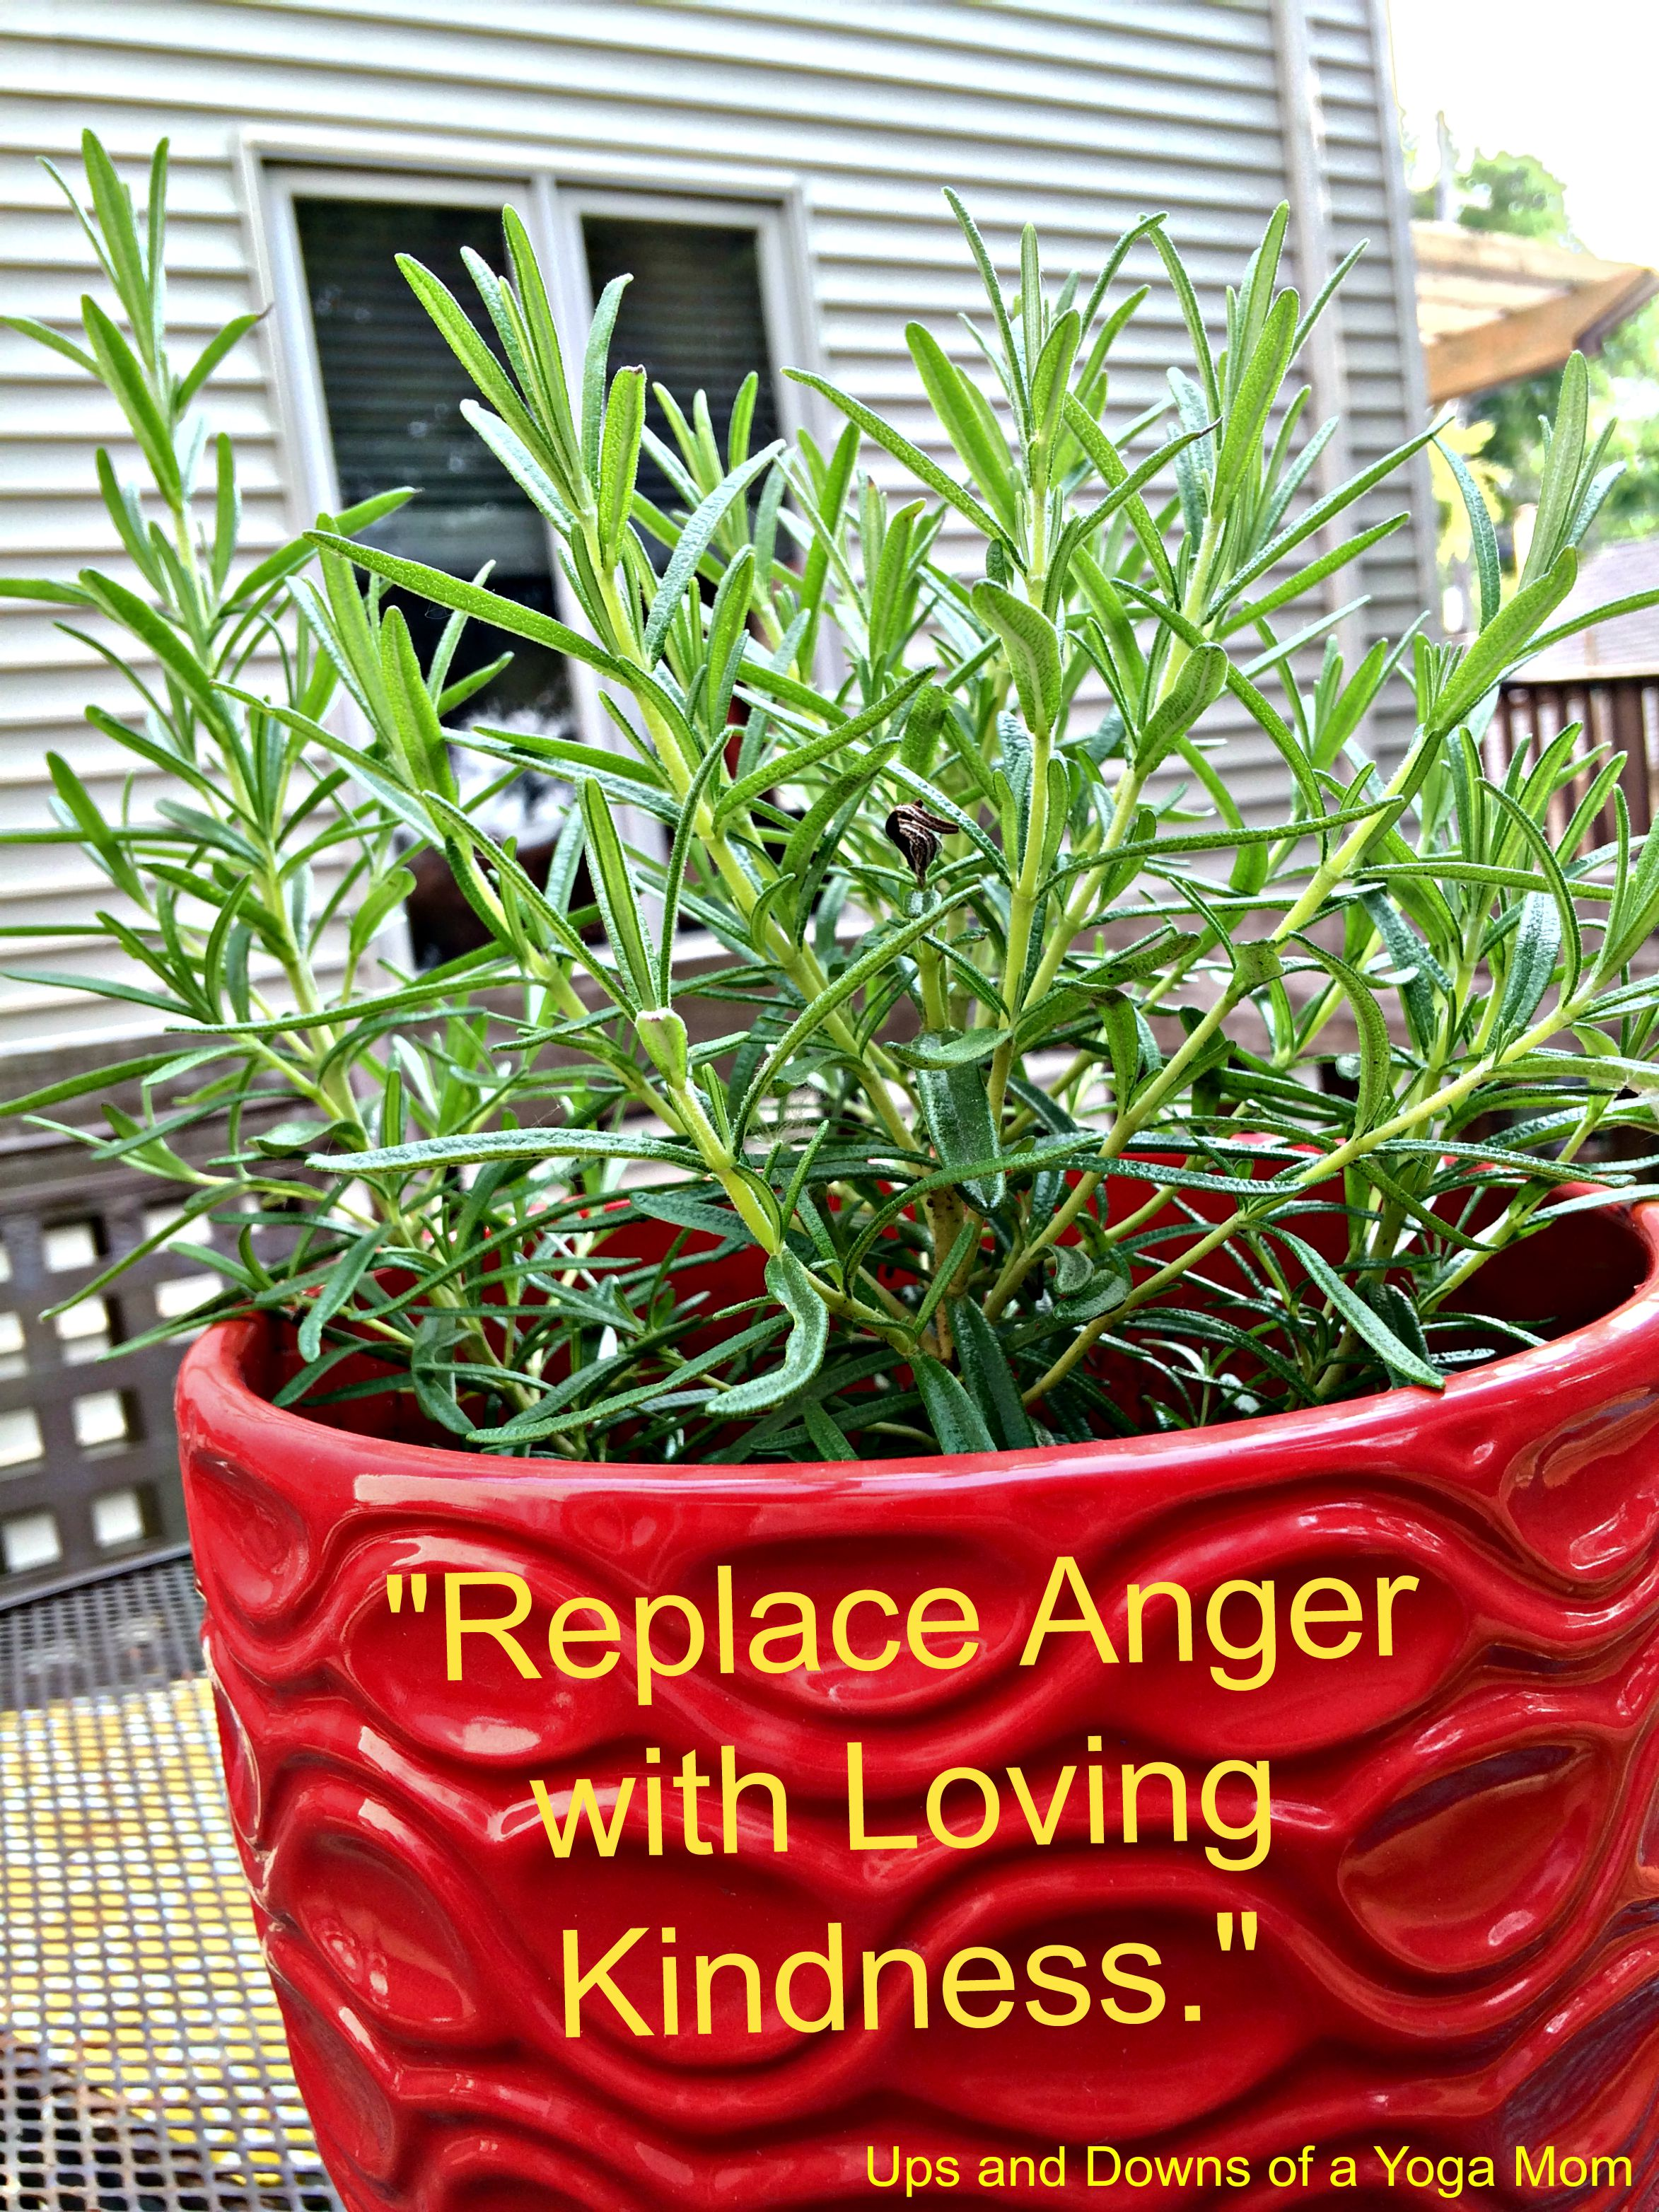 Replace Anger with Loving Kindness